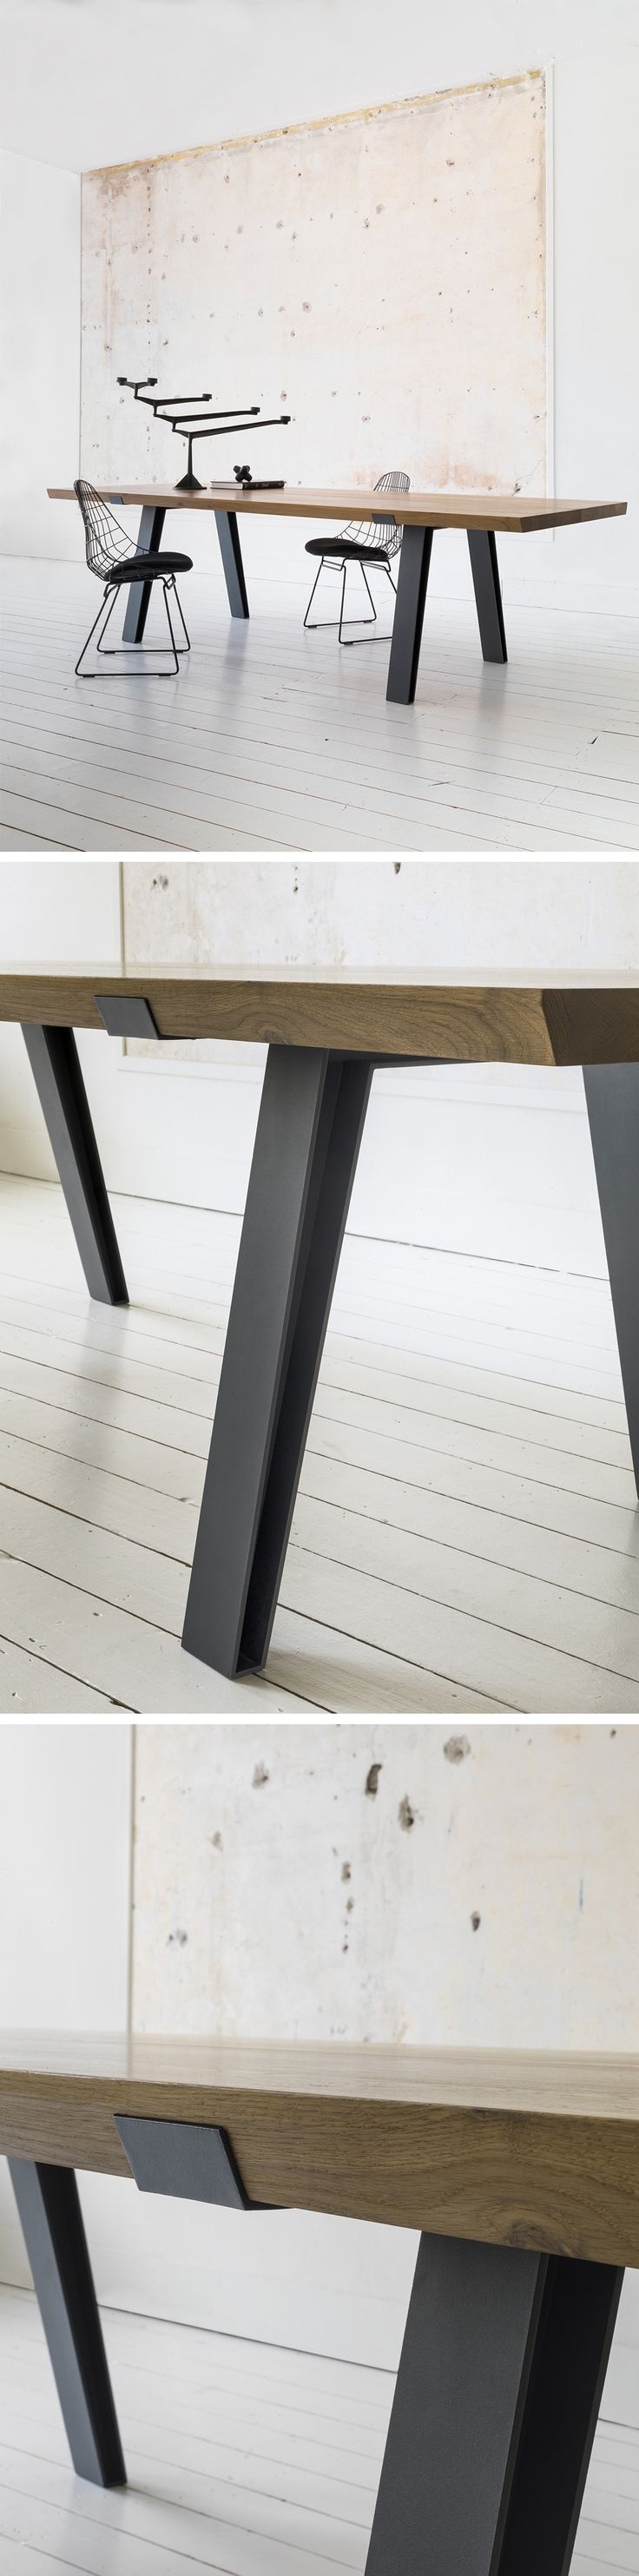 Qliv | Table (SM05 Chair Pastoe)|